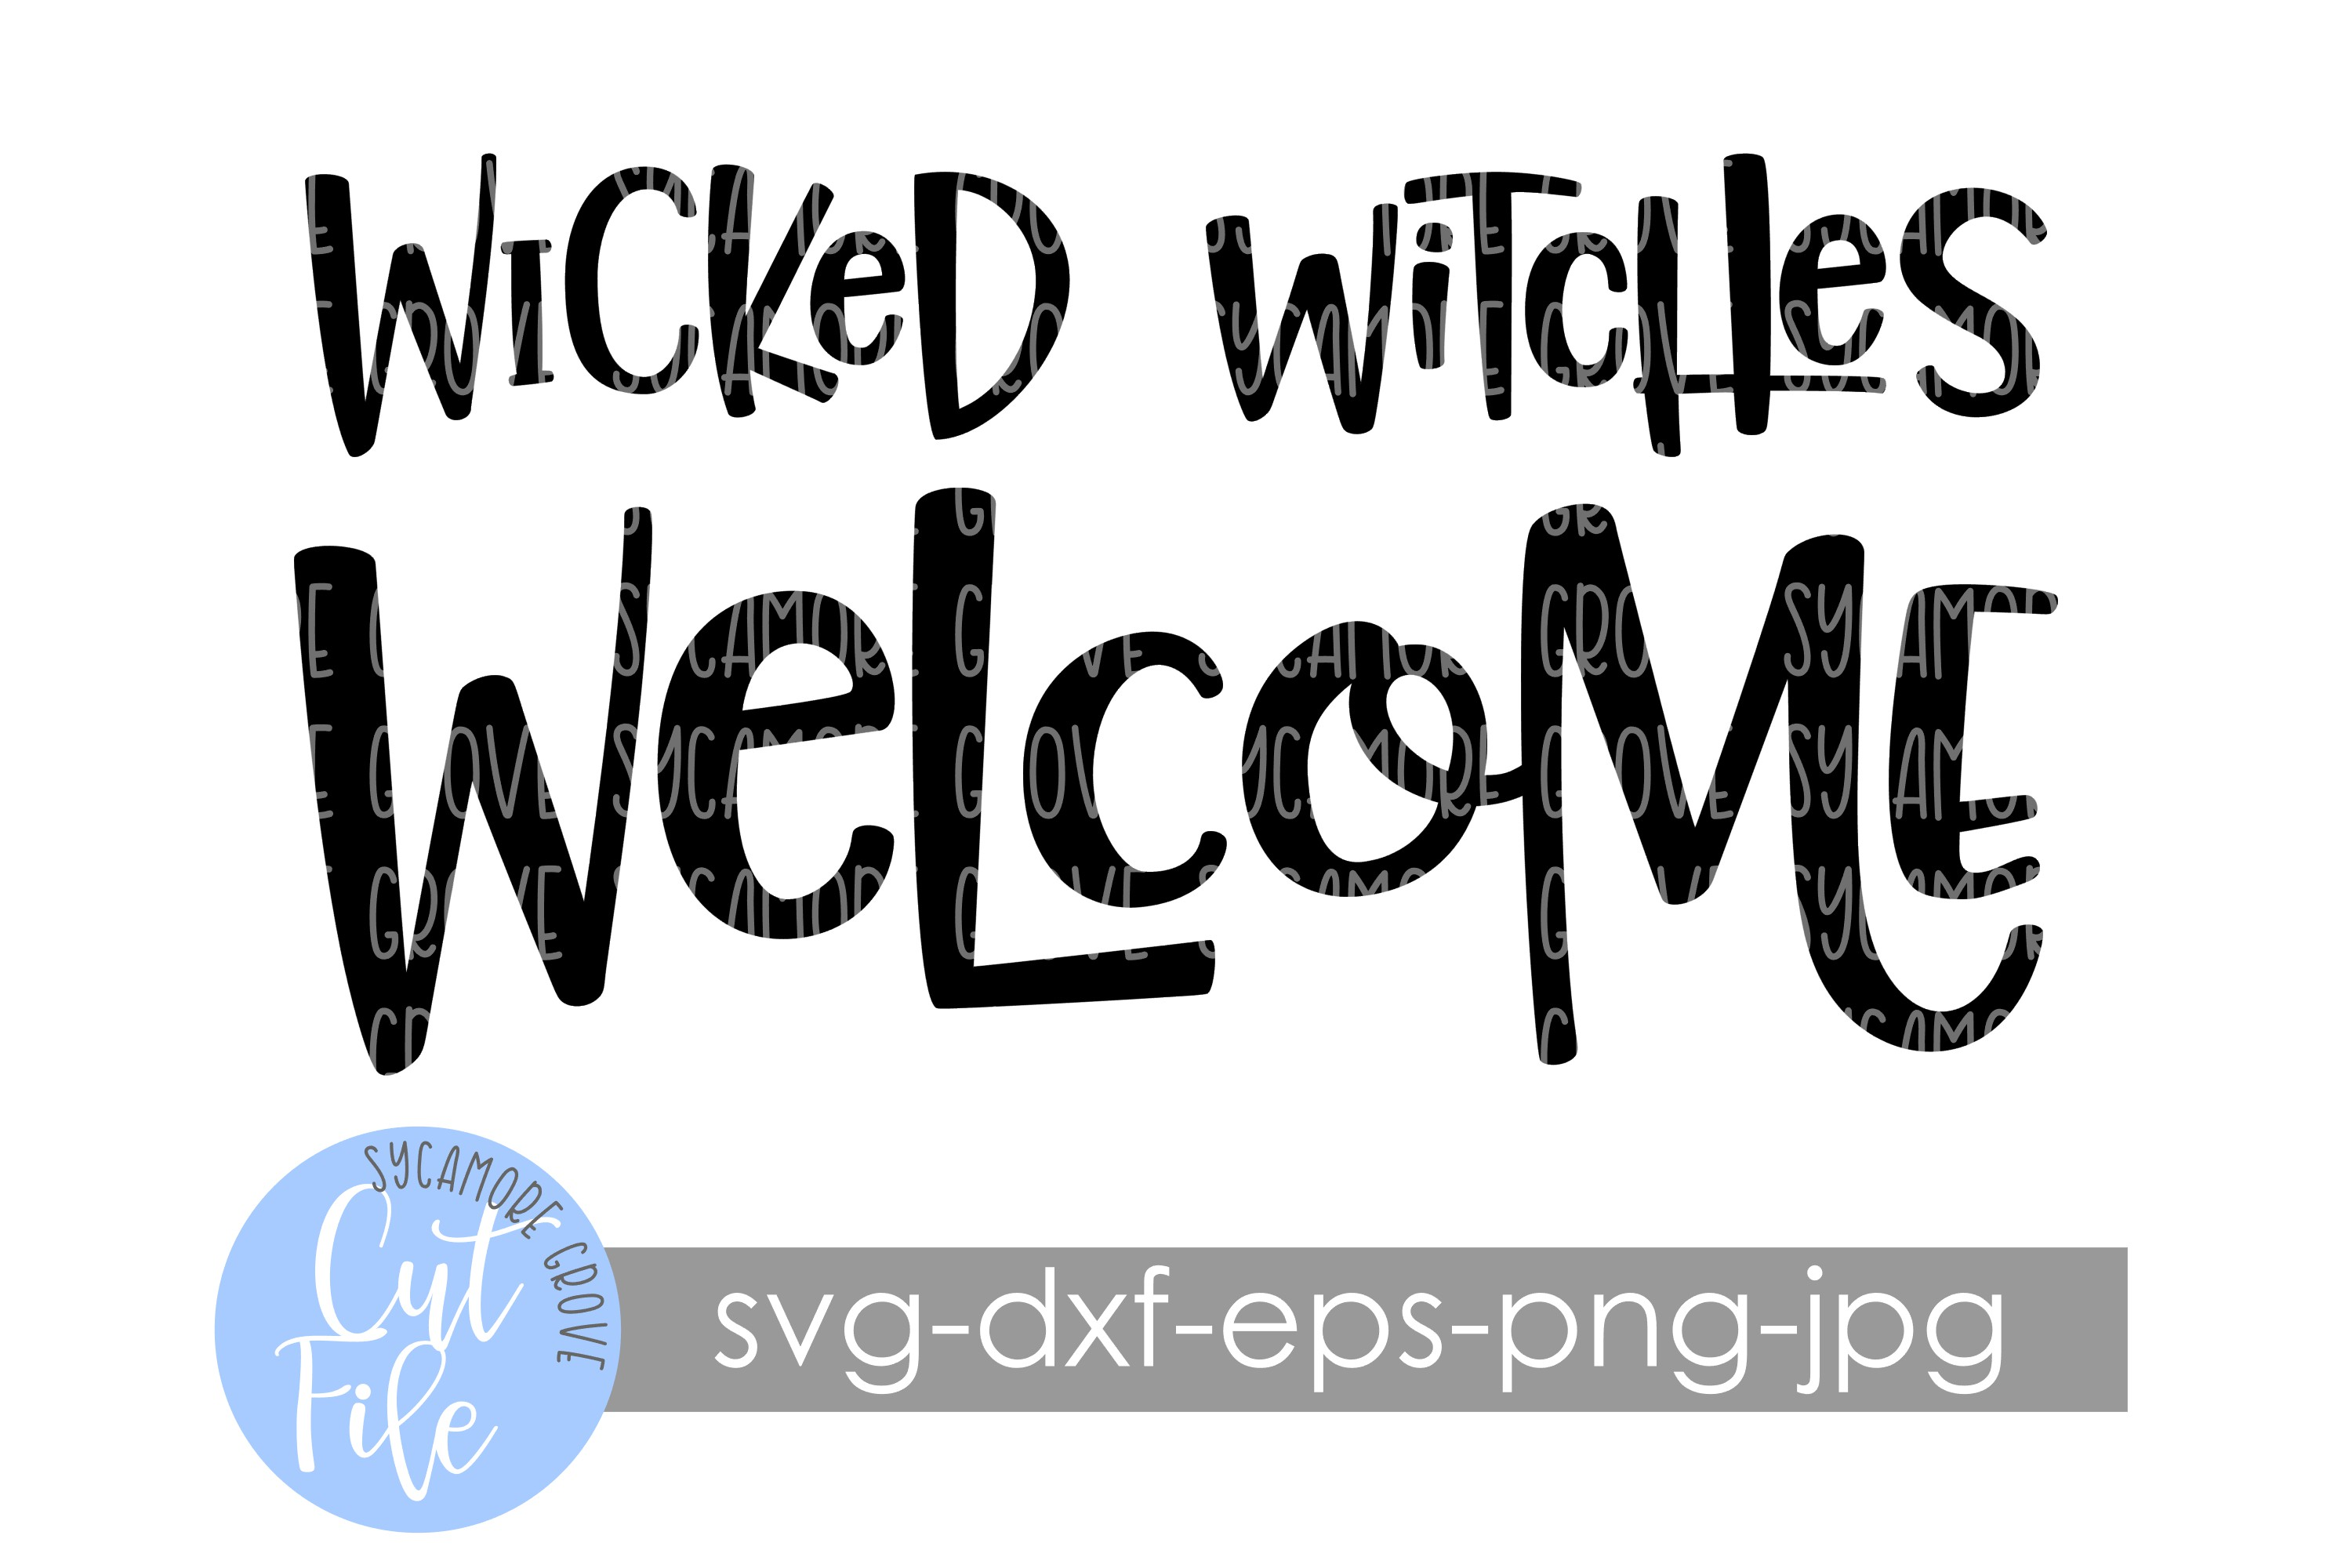 Wicked Witches Welcome | Halloween Doormat | SVG Cut File example image 2